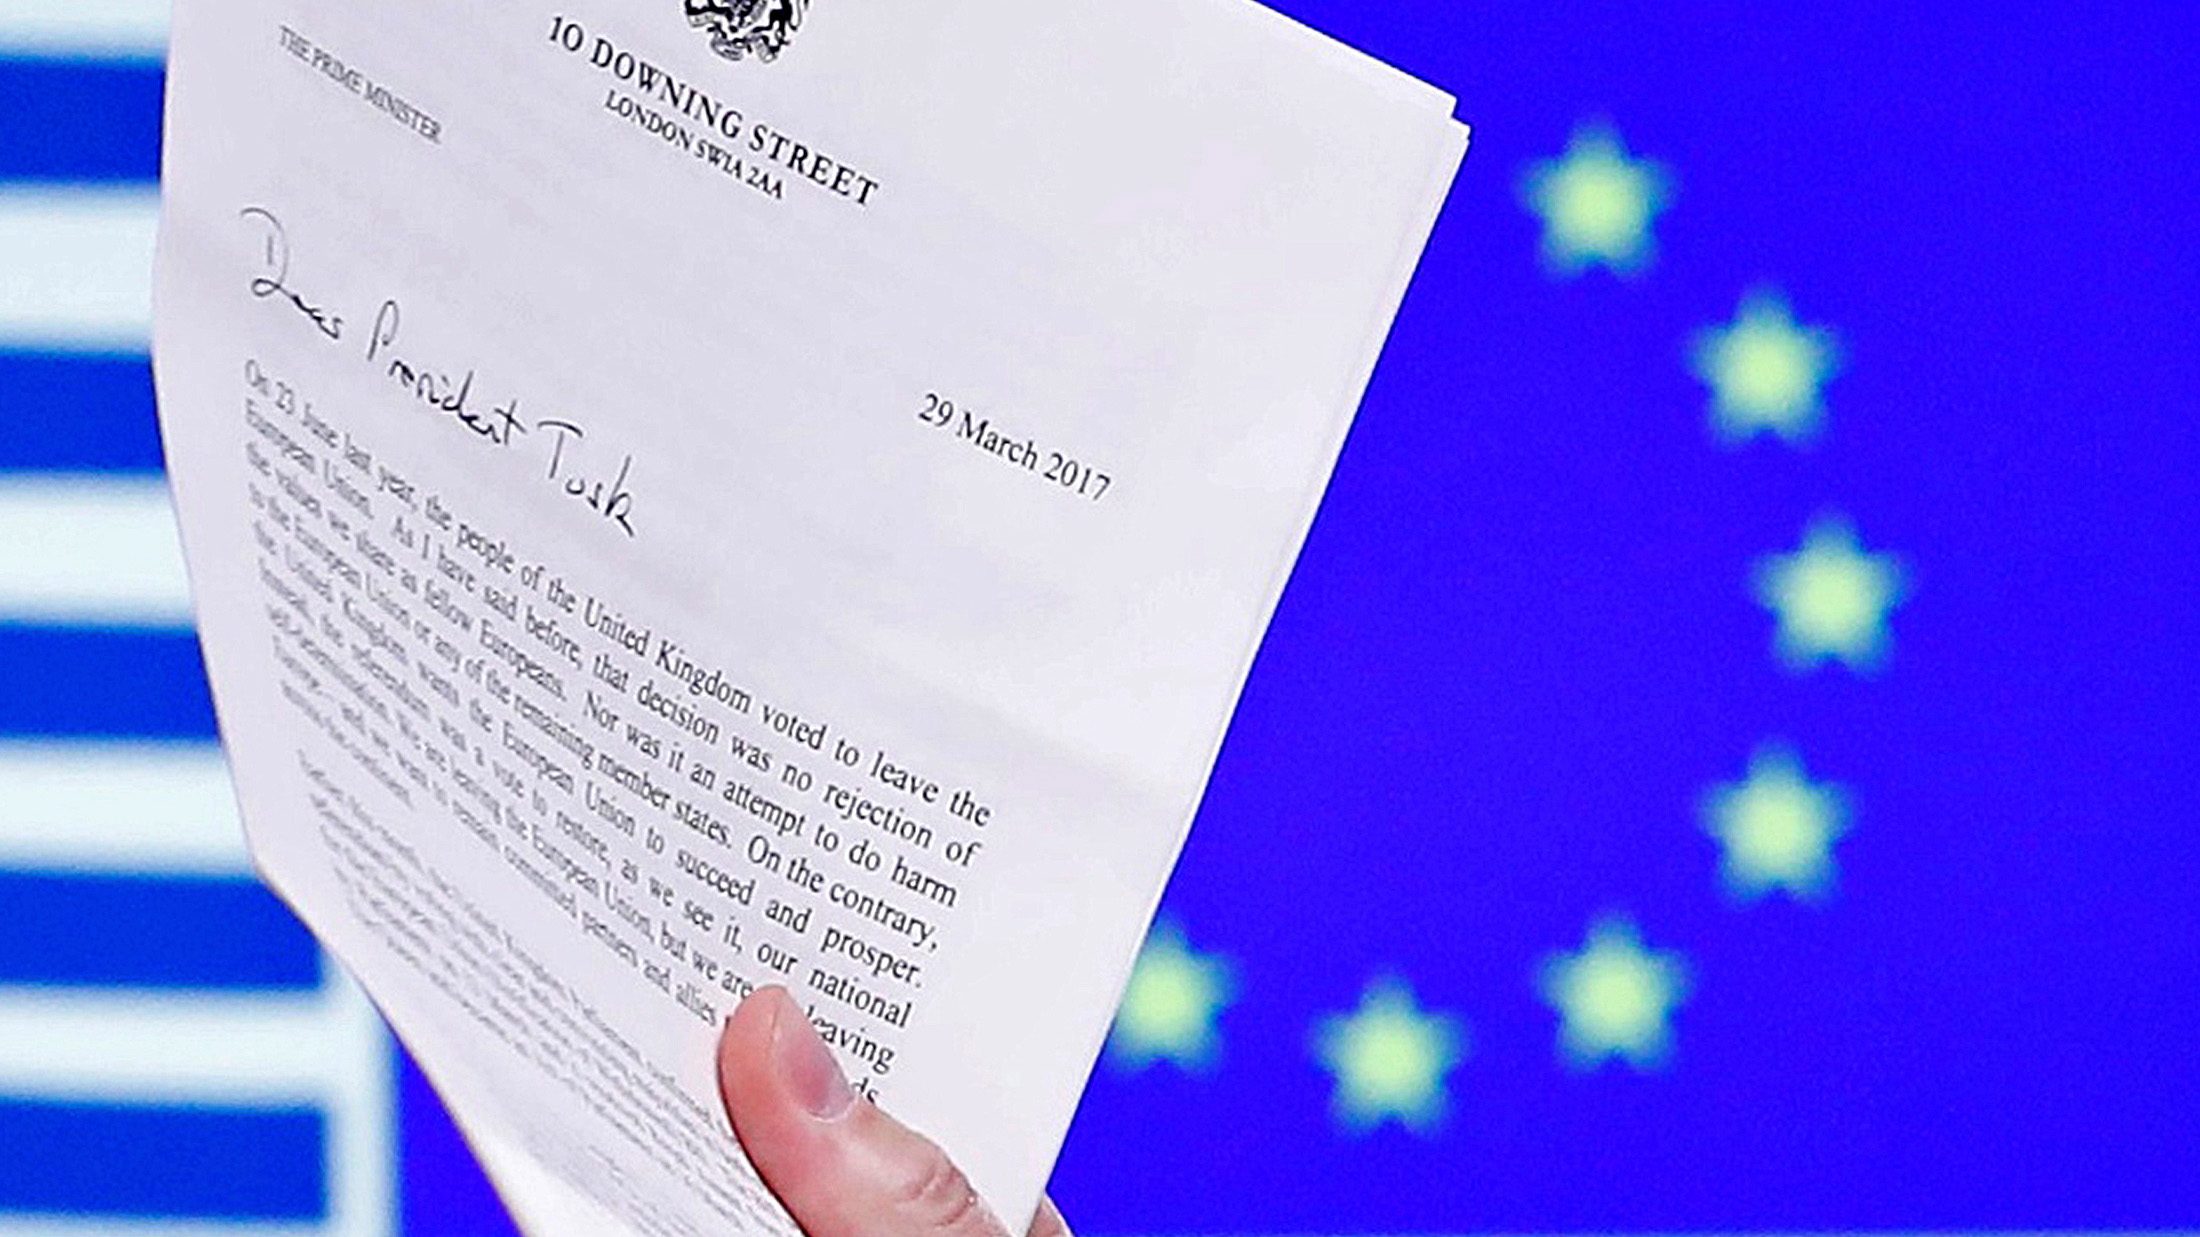 EU Council President Donald Tusk holds British Prime Minister Theresa May's Brexit letter, which was delivered by Britain's permanent representative to the European Union Tim Barrow (not pictured) that gives notice of the UK's intention to leave the bloc under Article 50 of the EU's Lisbon Treaty, in Brussels, Belgium, March 29, 2017. Picture taken March 29, 2017.  REUTERS/Yves Herman - RTX33BEP